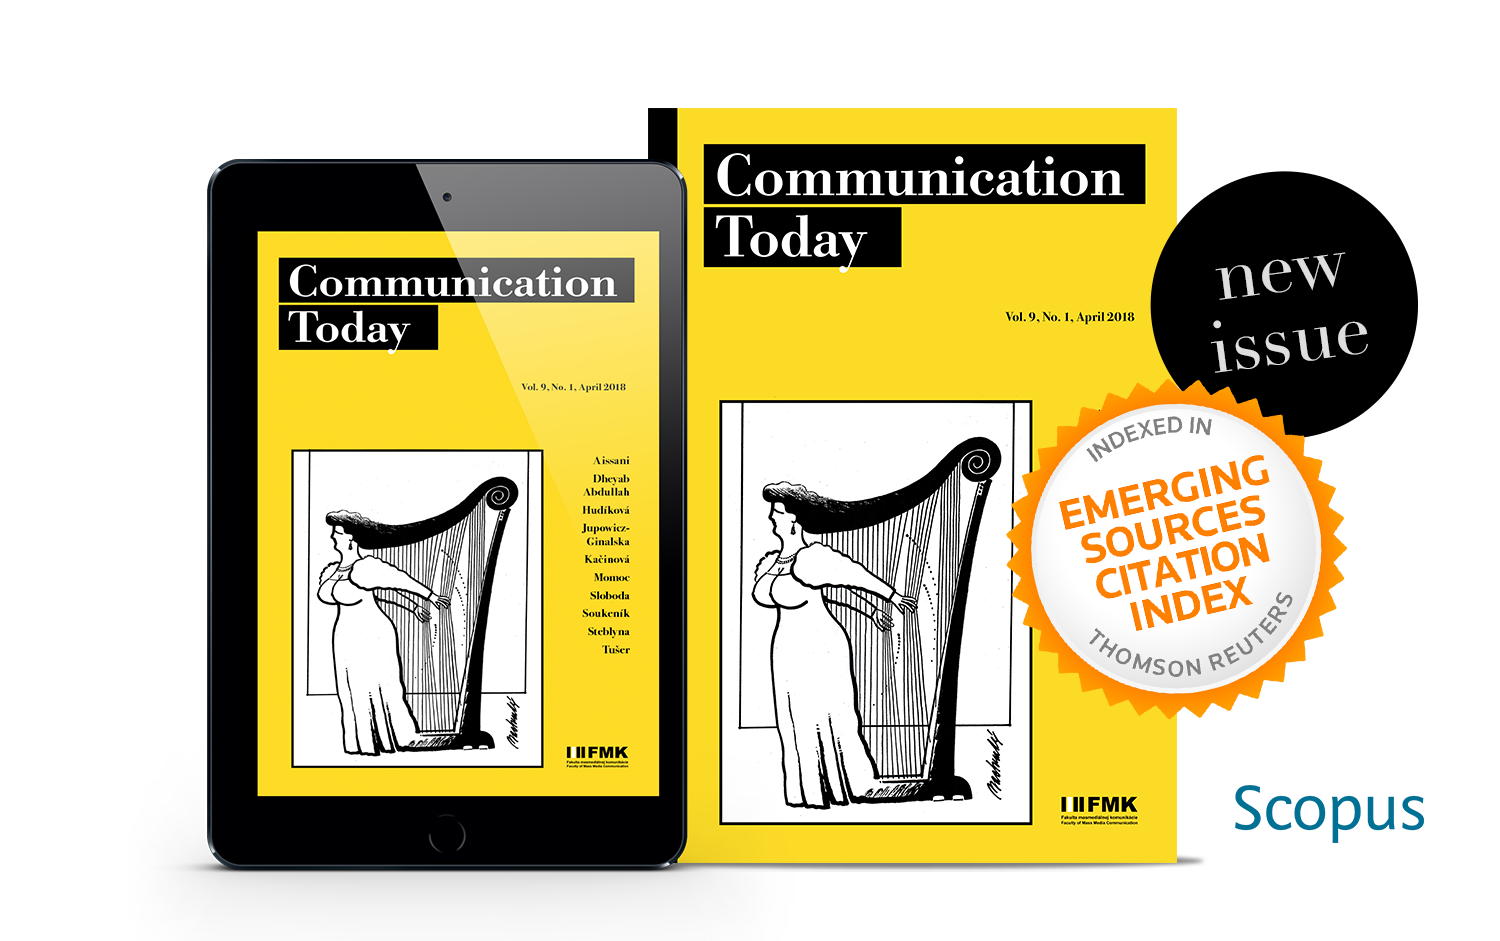 Cover: Communication Today no. 1, vol. 9